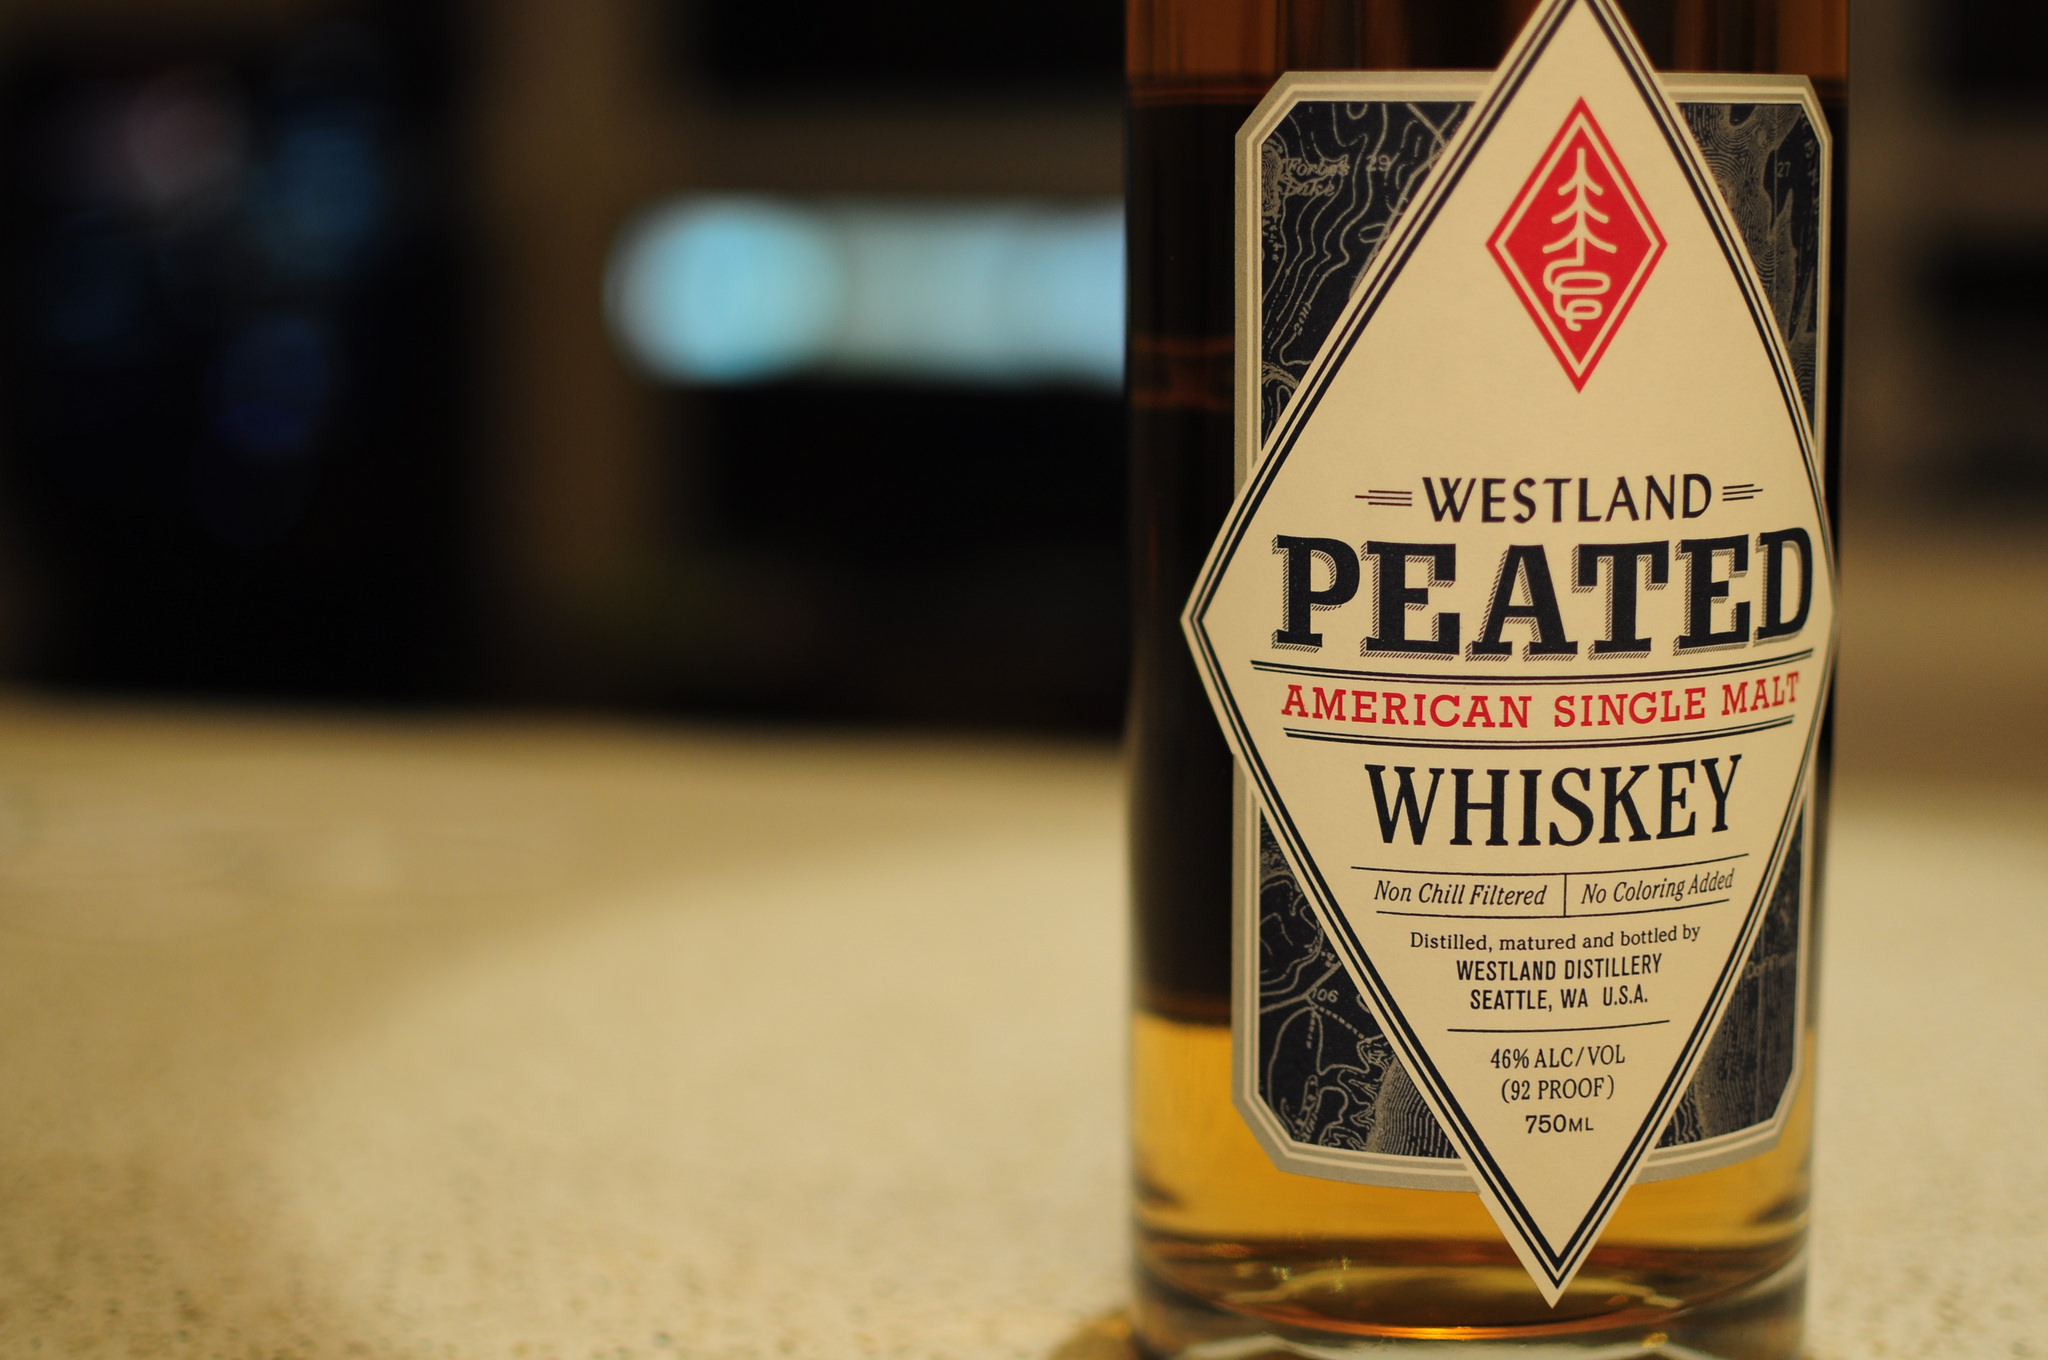 Westland Peated American Single Malt – scotch